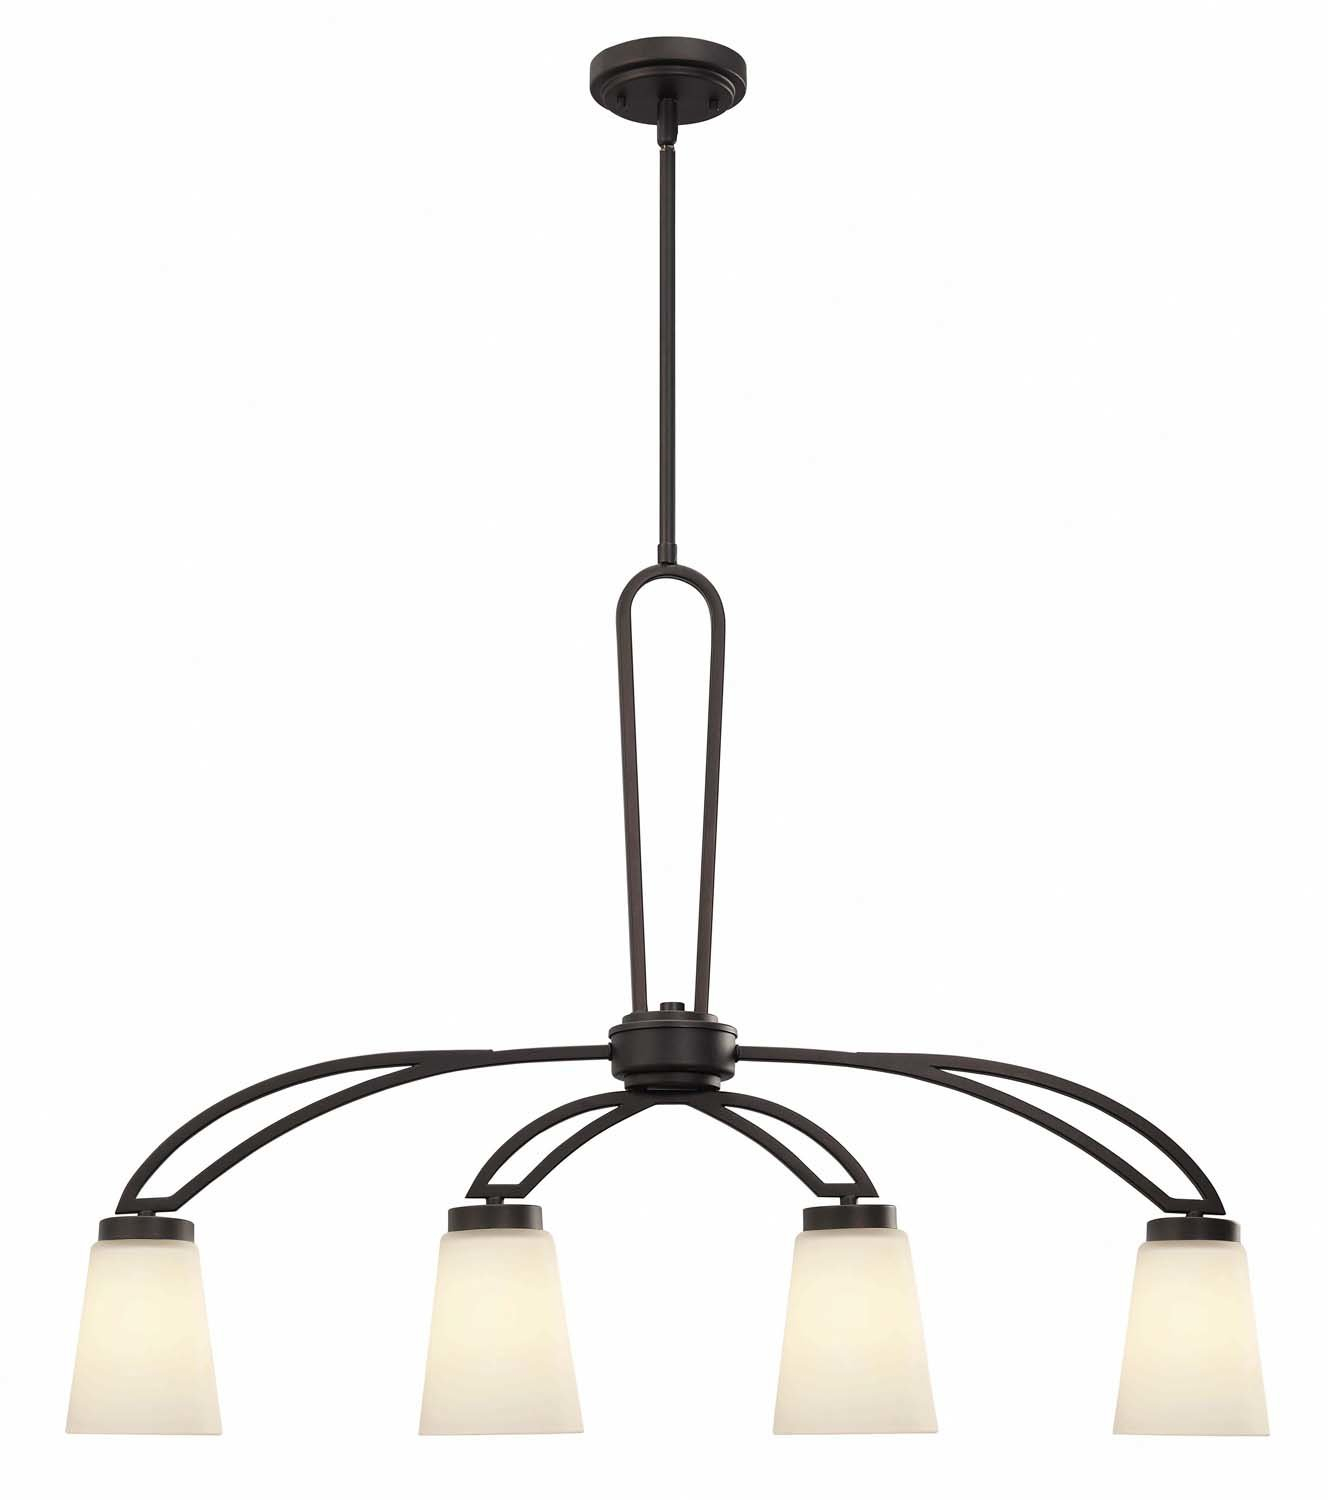 Andover Mills Casias 4 Light Kitchen Island Pendant Regarding Smithville 4 Light Kitchen Island Pendants (View 4 of 30)